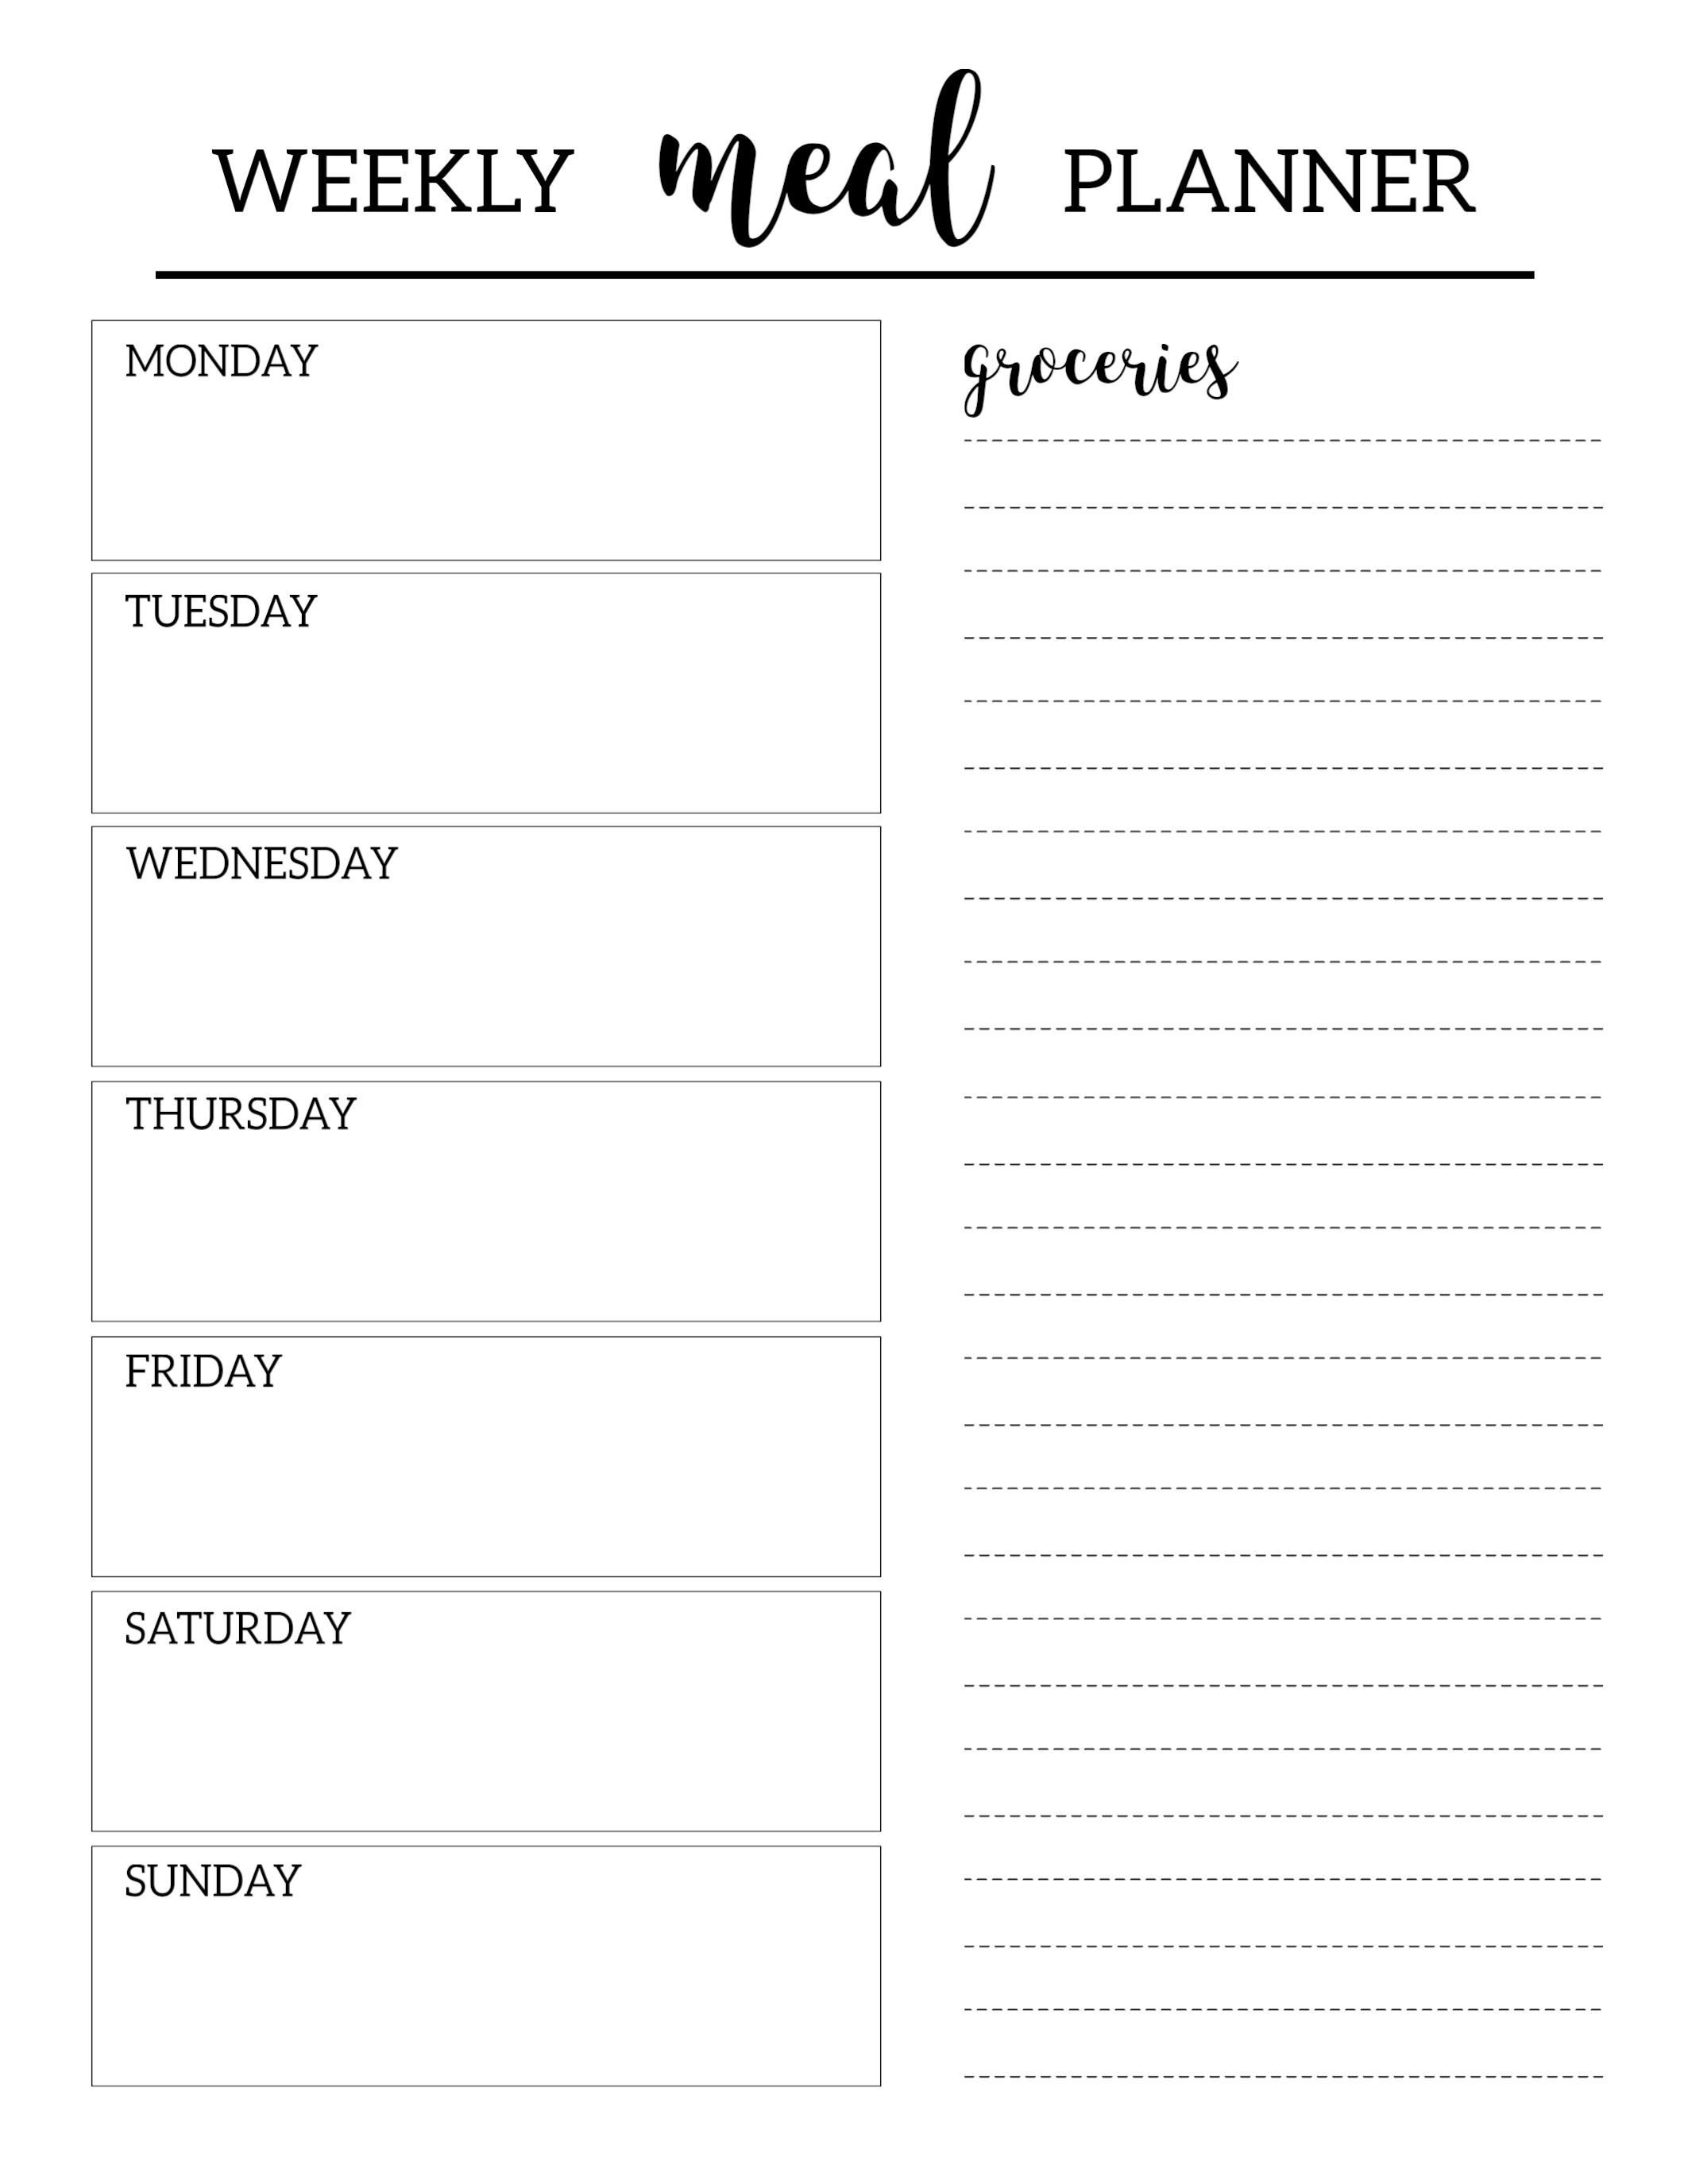 Free Printable Meal Planner Template | Printables | Meal Planner - Weekly Menu Free Printable